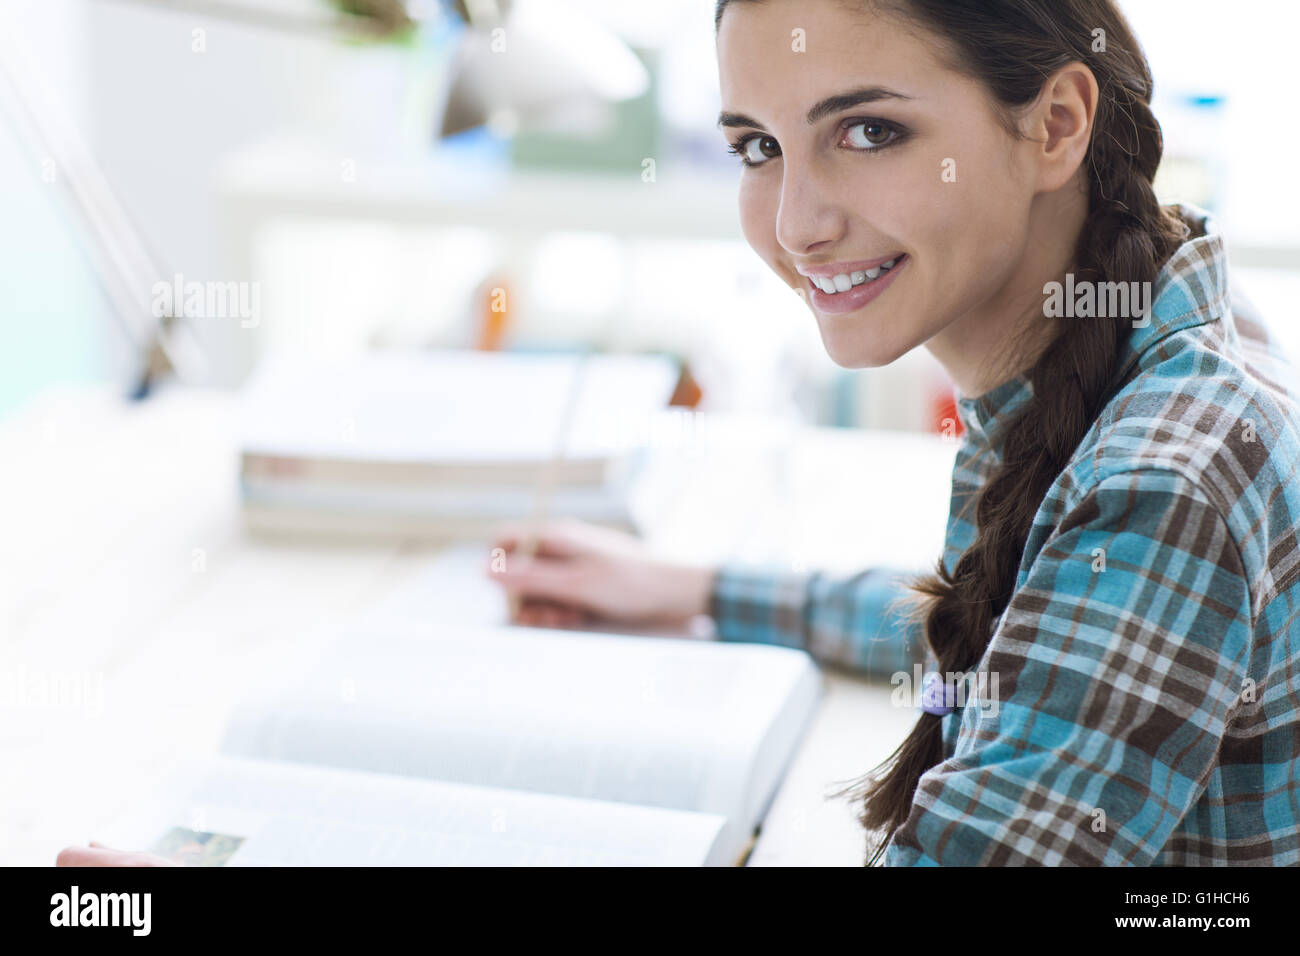 Smiling young student girl studying and reading a book, education and learning concept - Stock Image